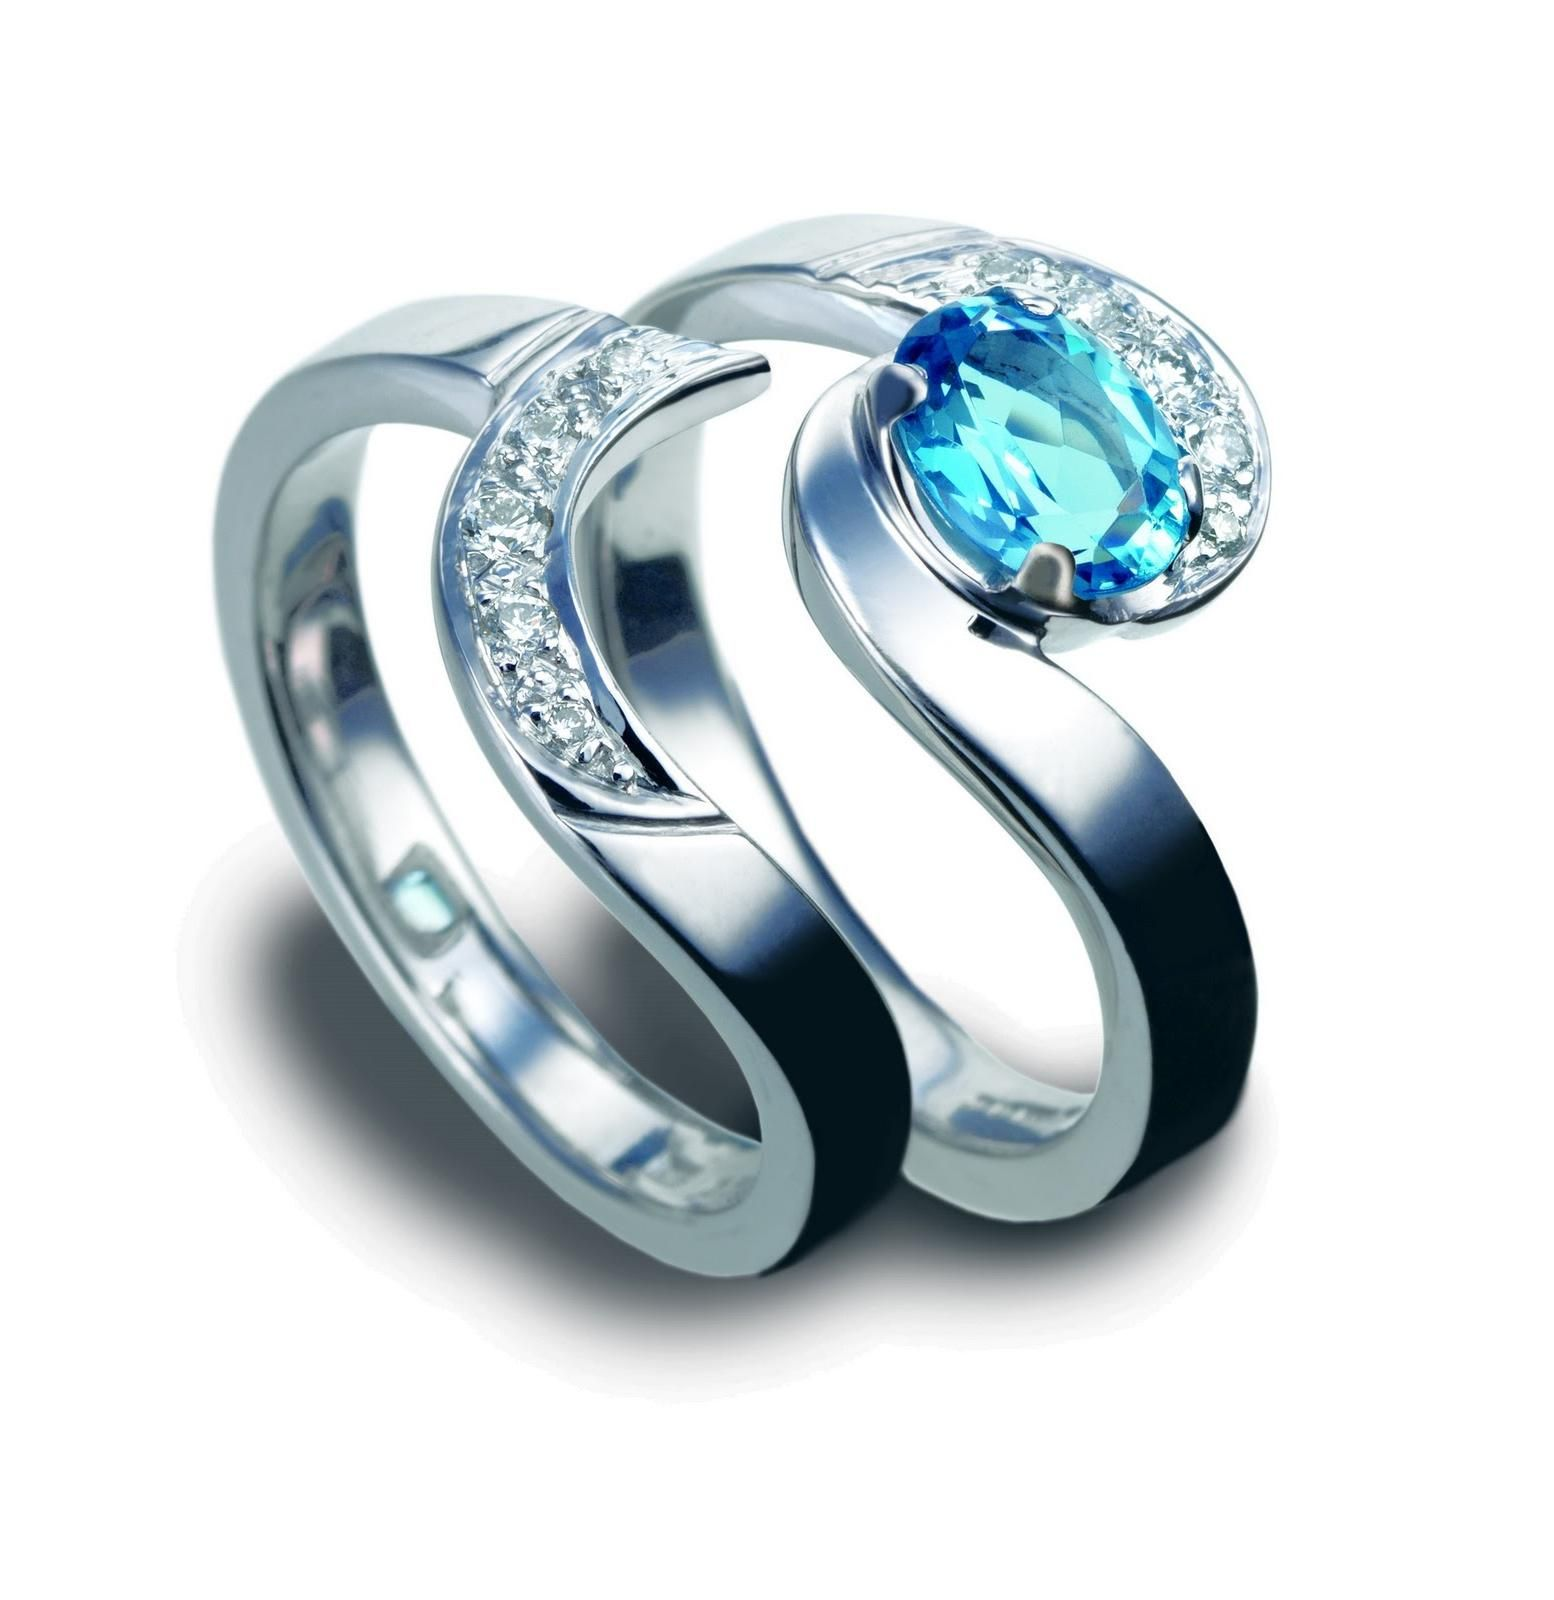 disposition mountains accesskeyid wedding alloworigin inspired rings ocean